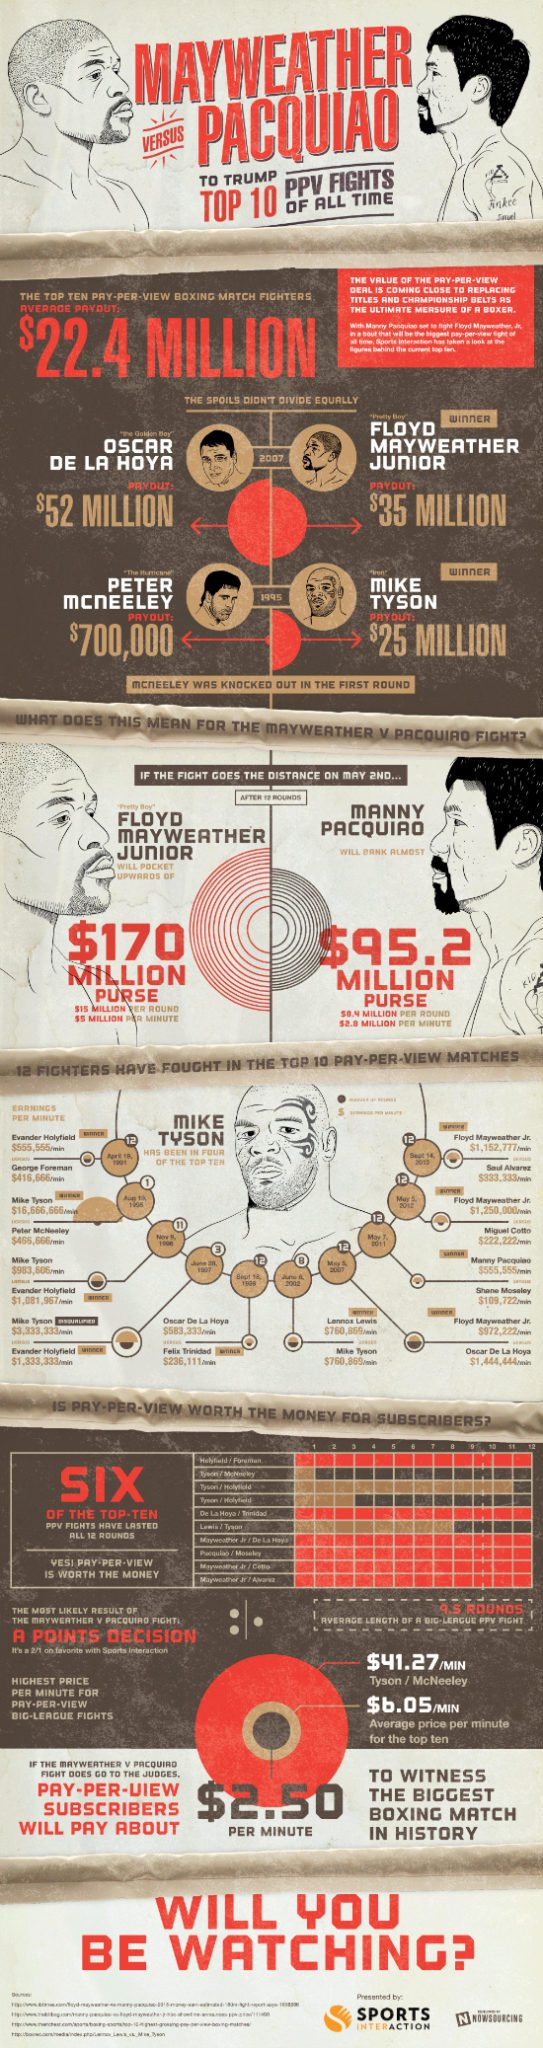 mayweather-vs-pacquiao-ppv-boxing-infographic 550px